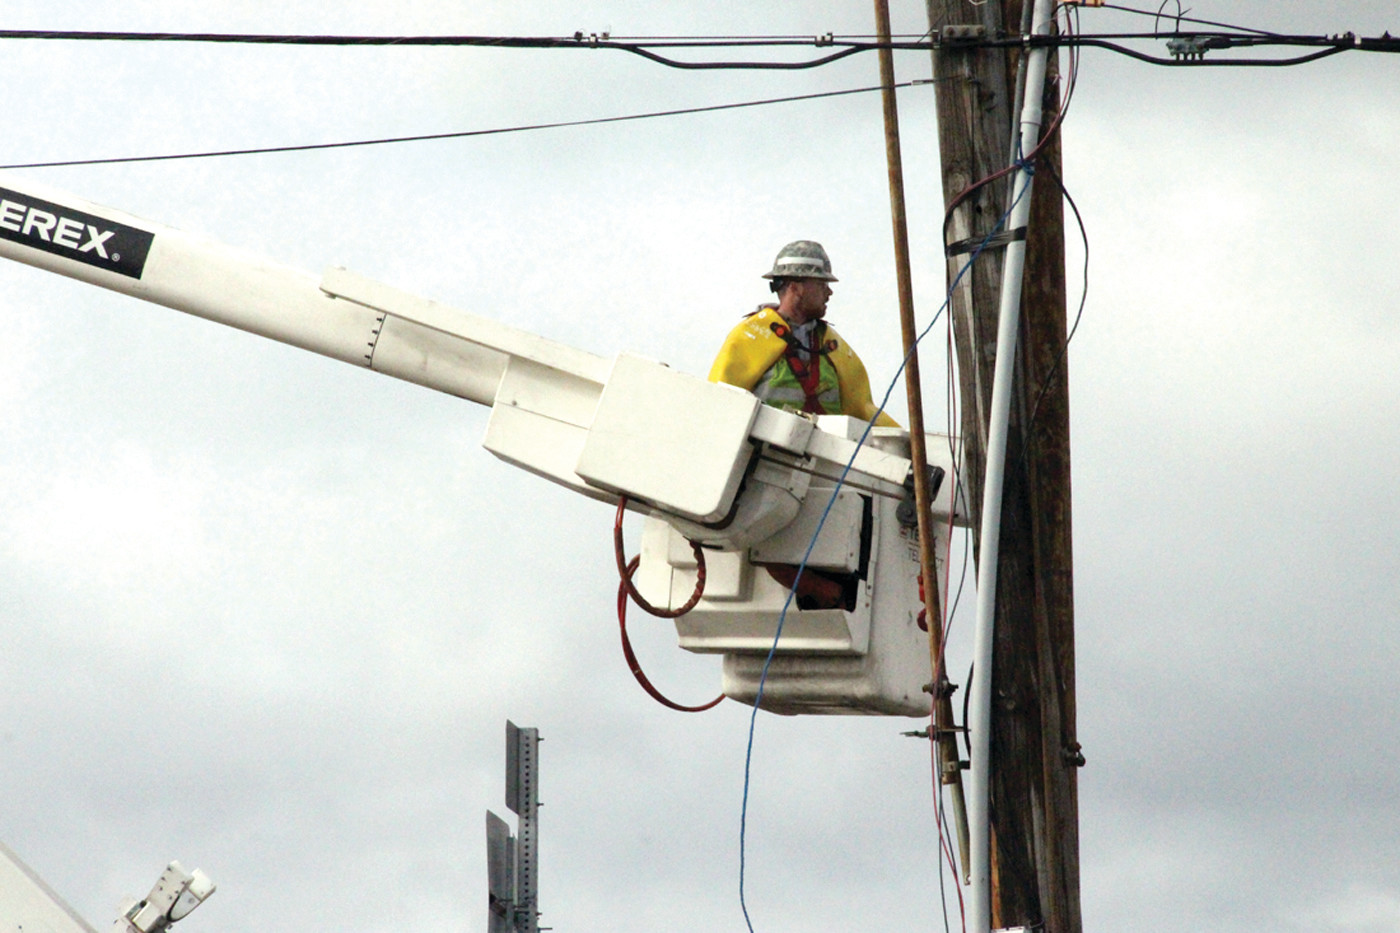 HIGH WIRE SHOW: National Grid lineman Bobby Kreamer works to secure a utility pole near the Cranston Police station.